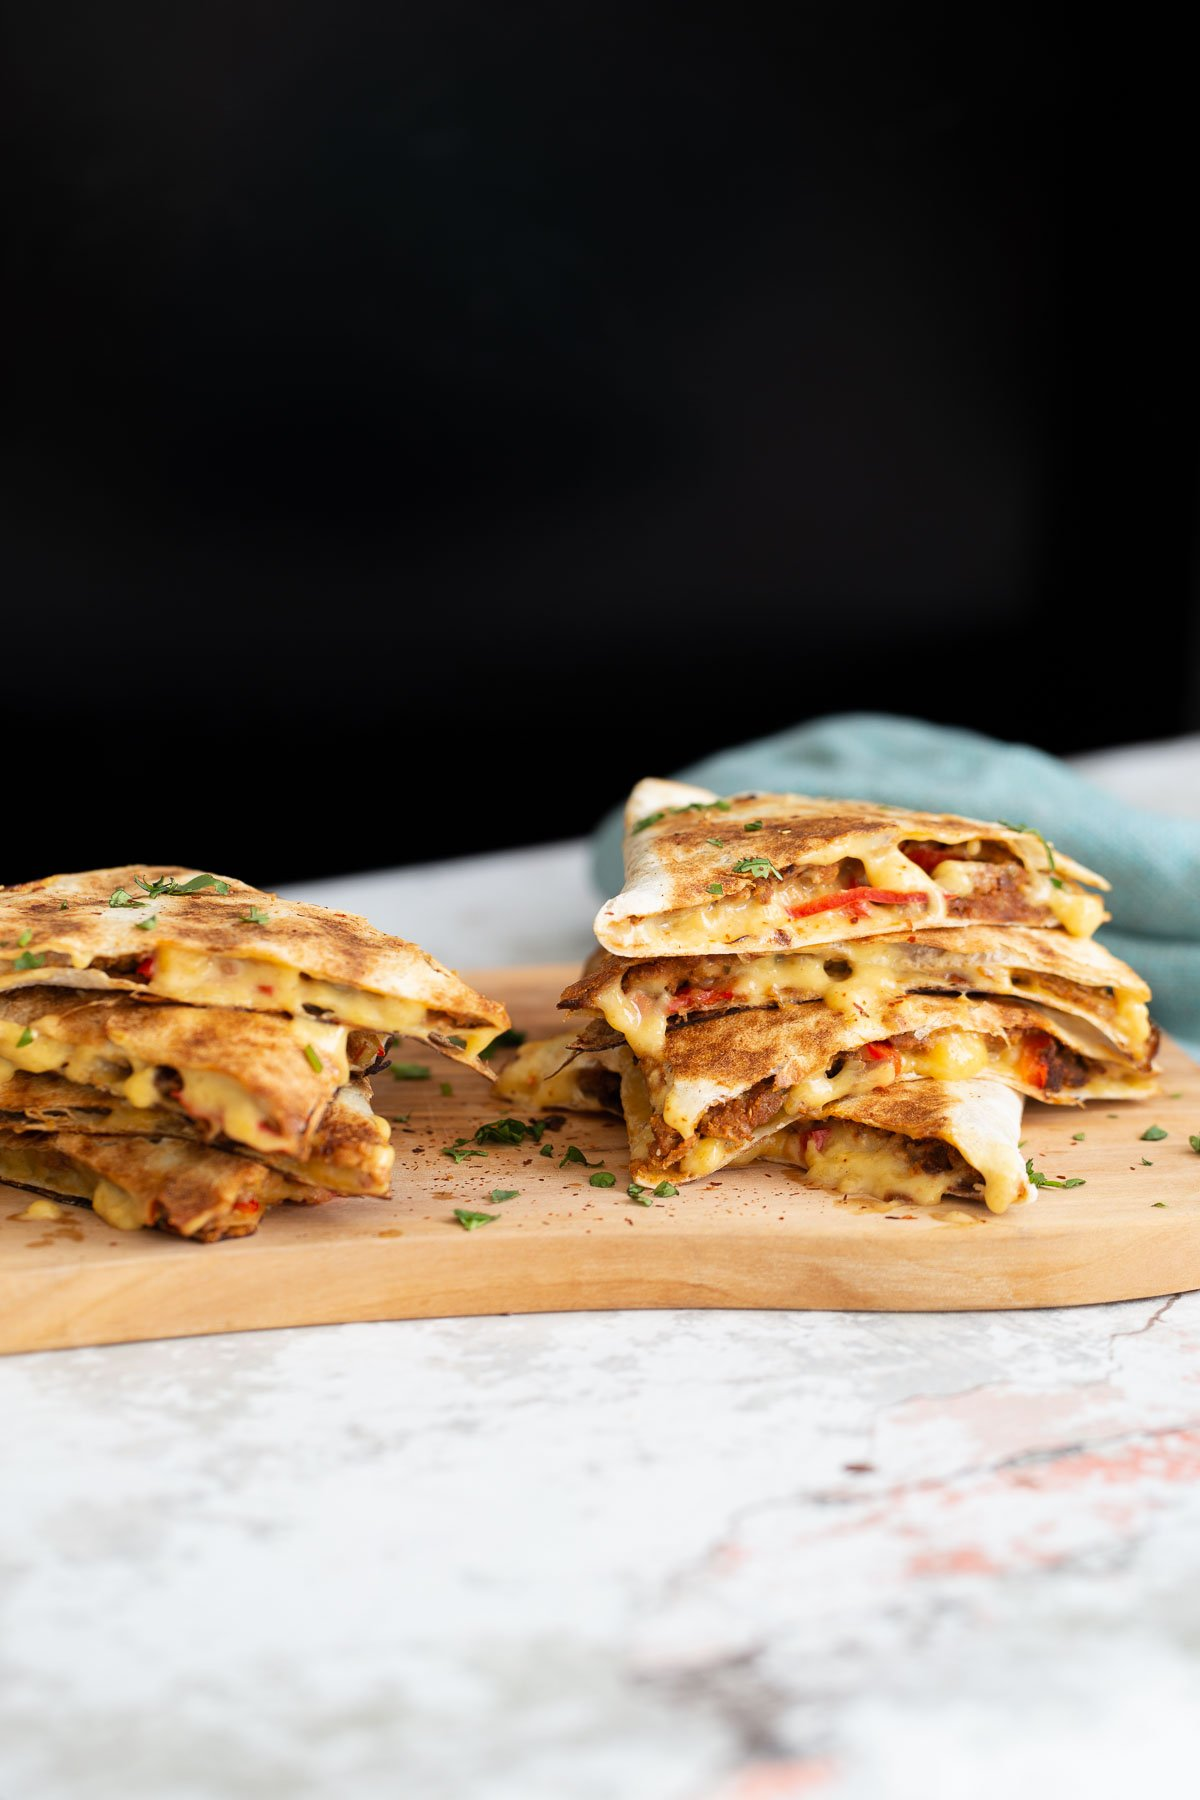 side view of vegan quesadillas filled with vegan walnut taco meat, bell pepper and melted cheese